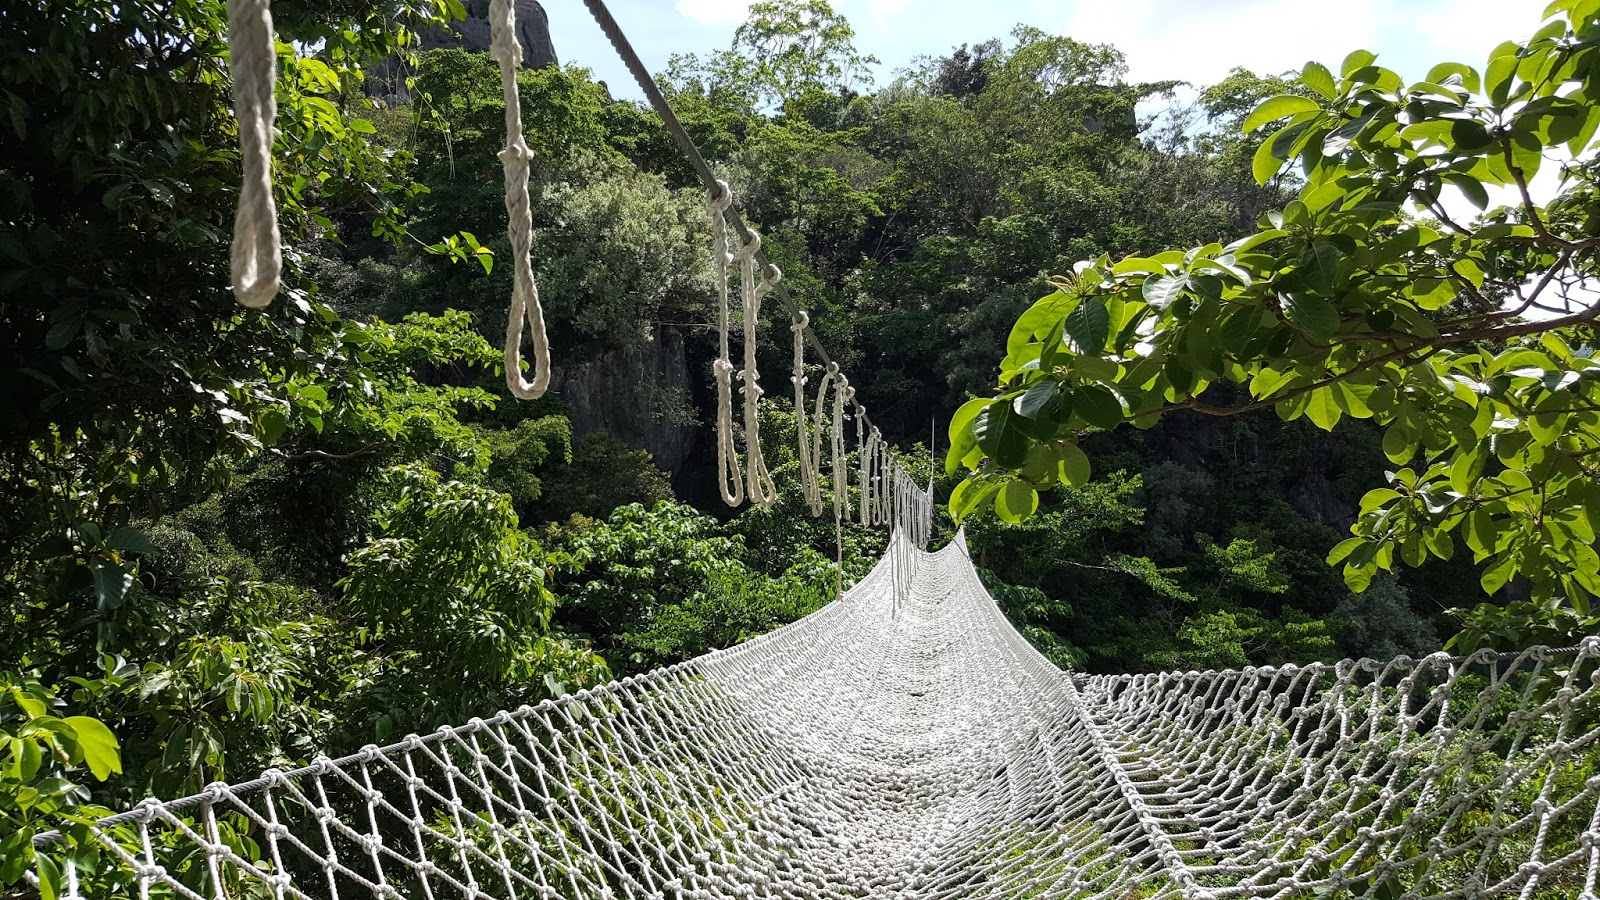 Rope bridge in Bali